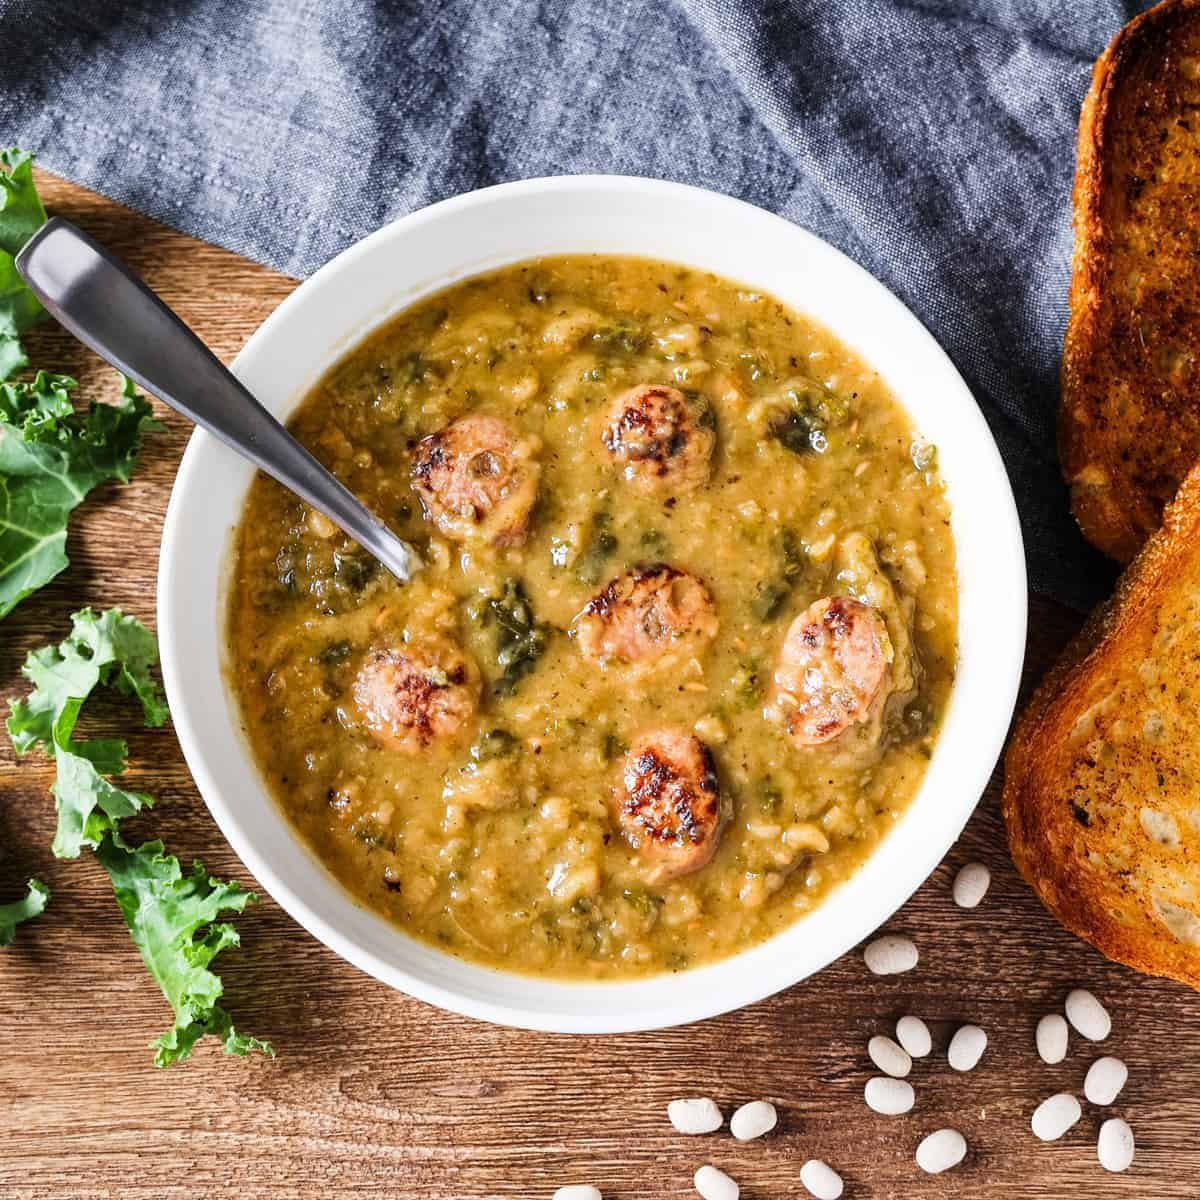 Overhead view showing a bowl of white bean soup with kale and chicken sausage served with a side  of garlic bread.